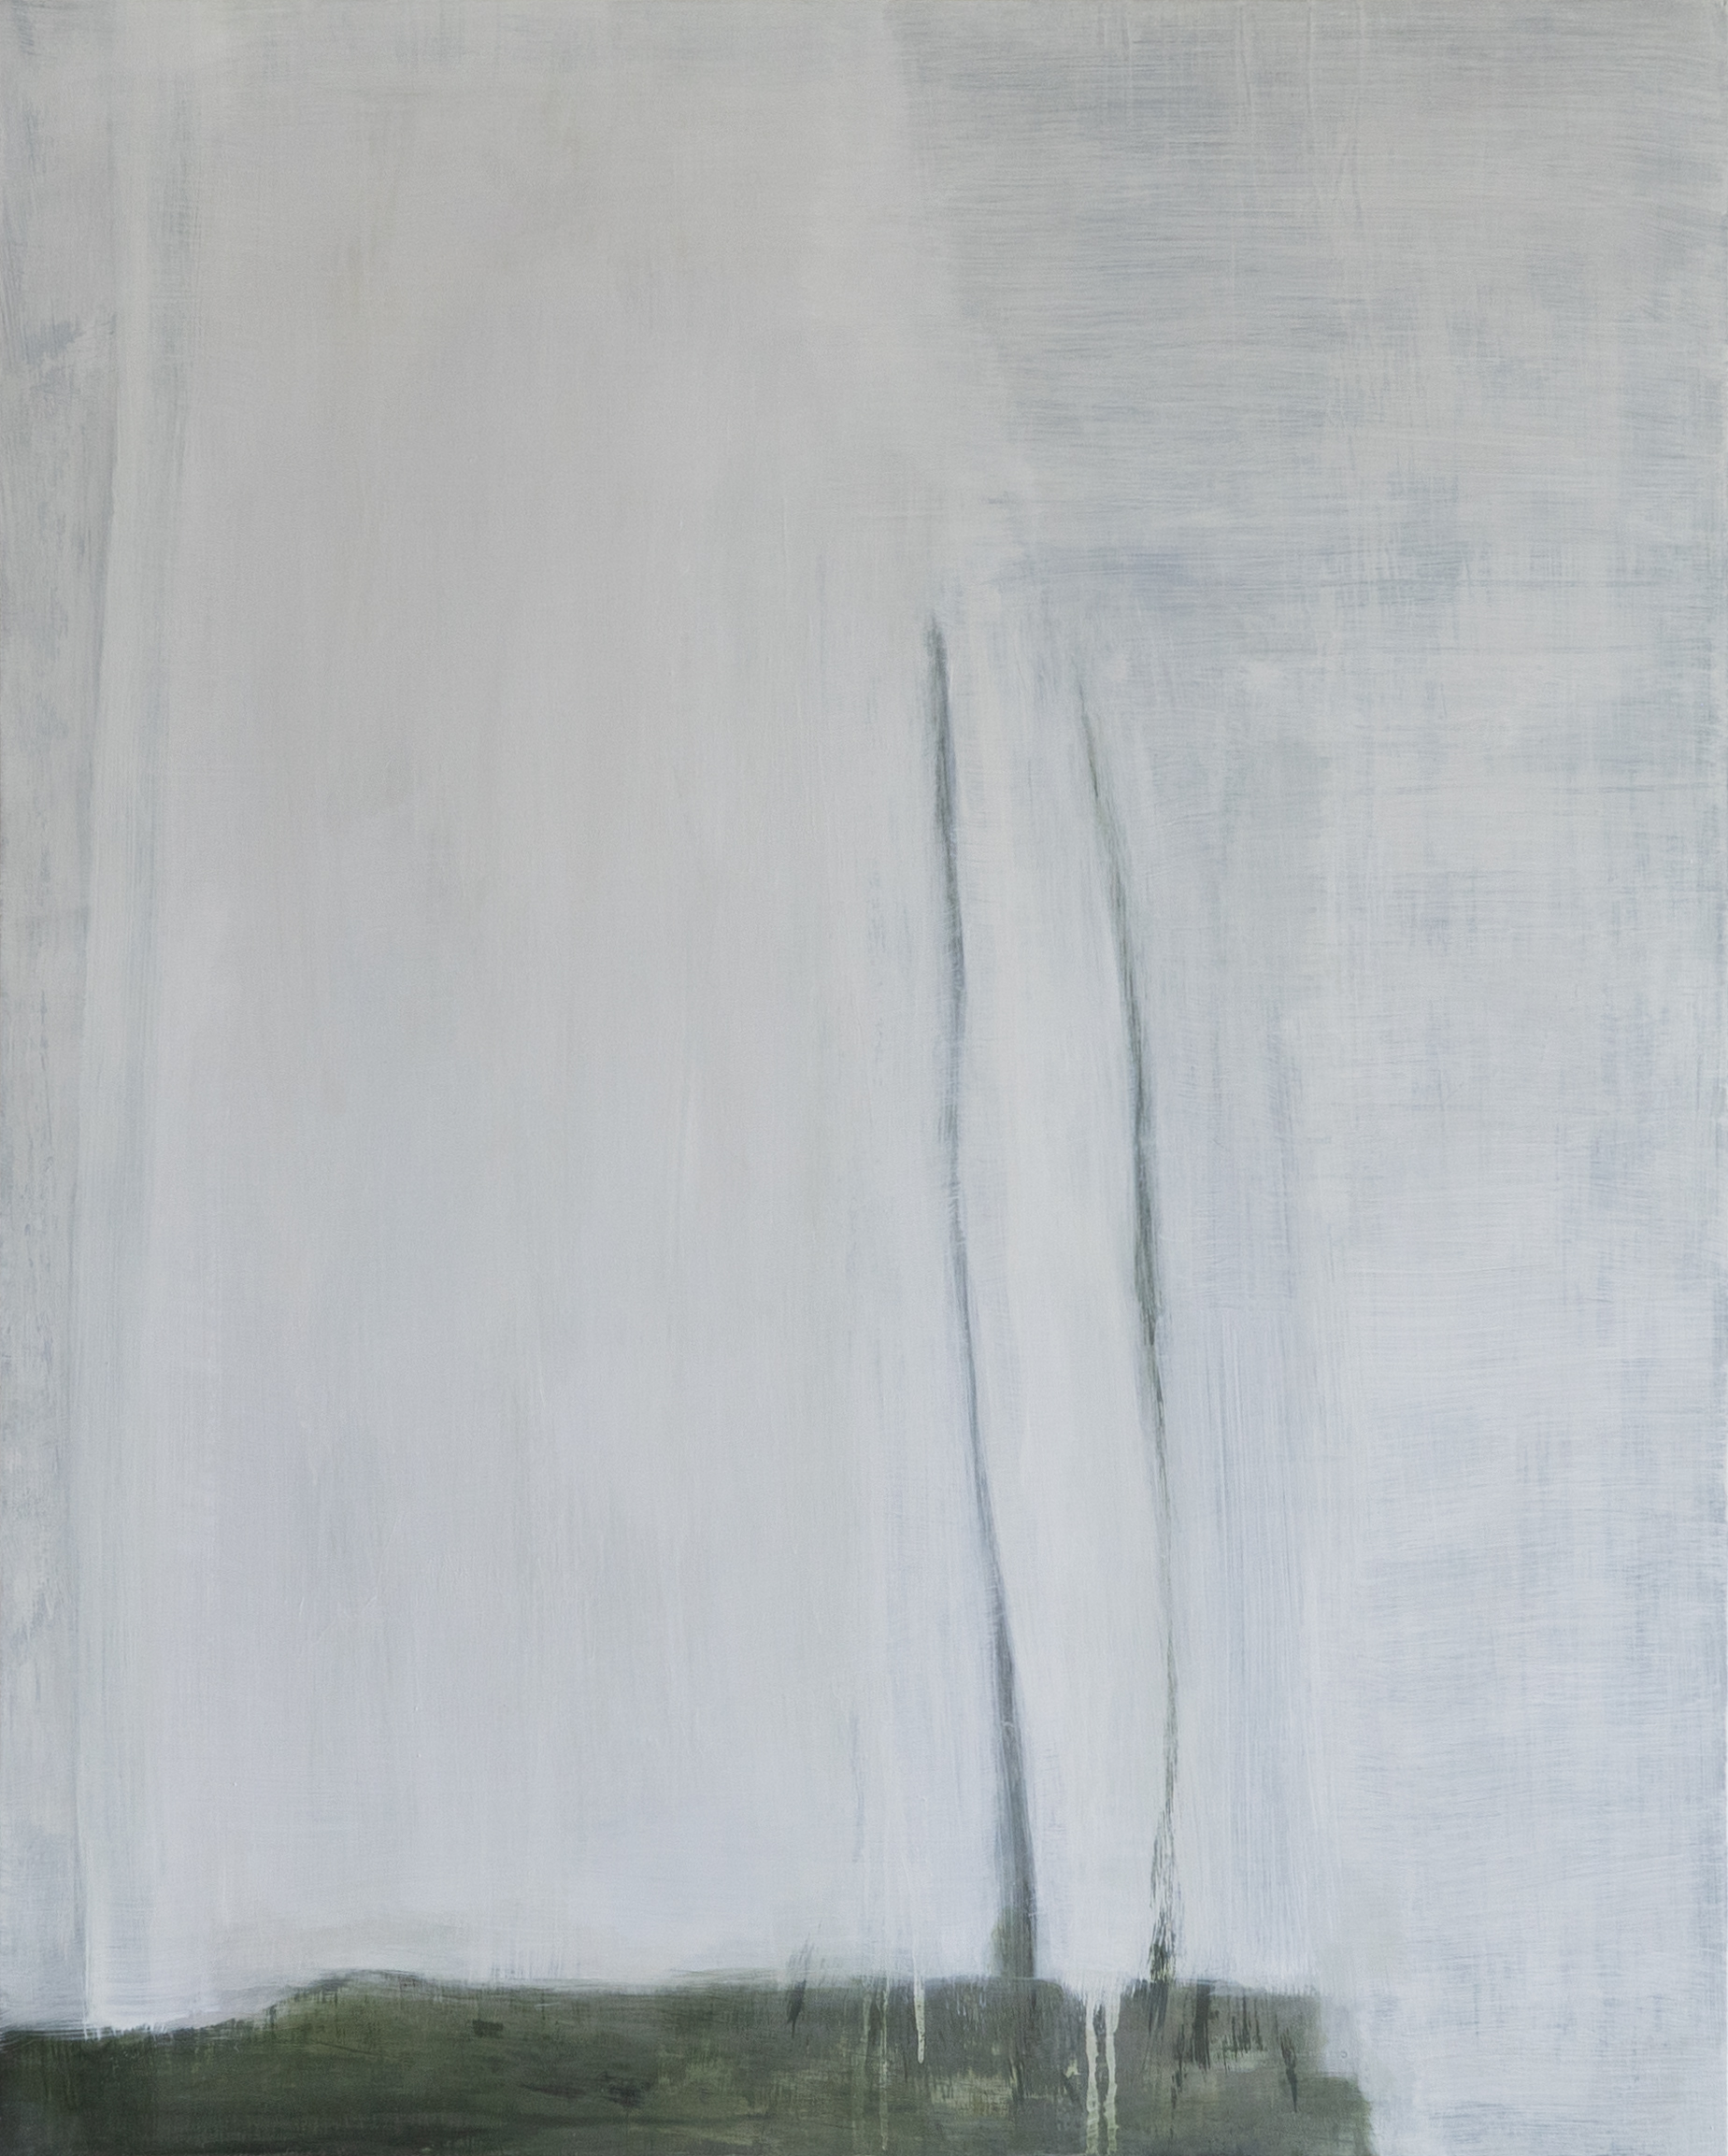 Edge ofWhite 2019 50 x 40 x 1.5in oil on wood photo: Sasha Schell